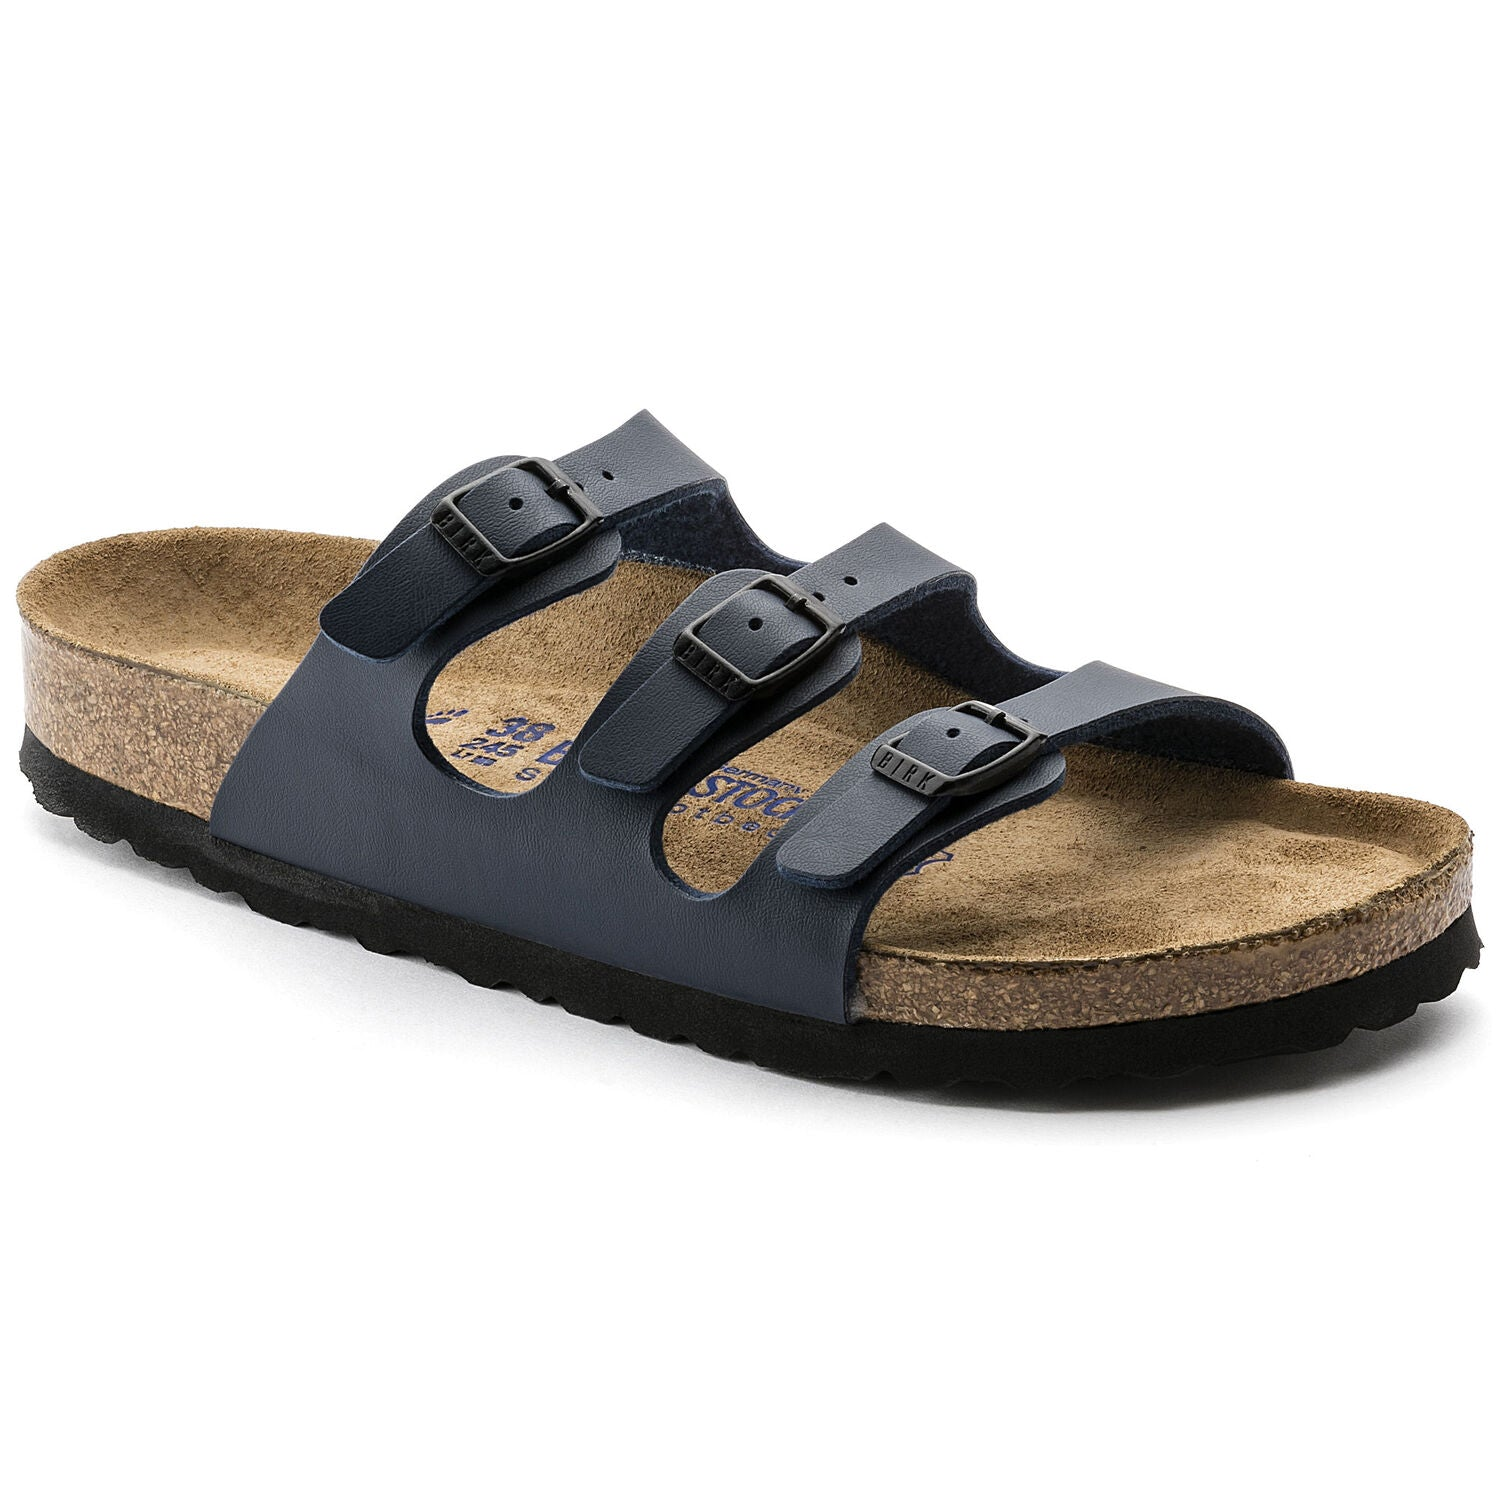 FLORIDA SOFT FOOTBED BIRKO-FLOR - BLUE